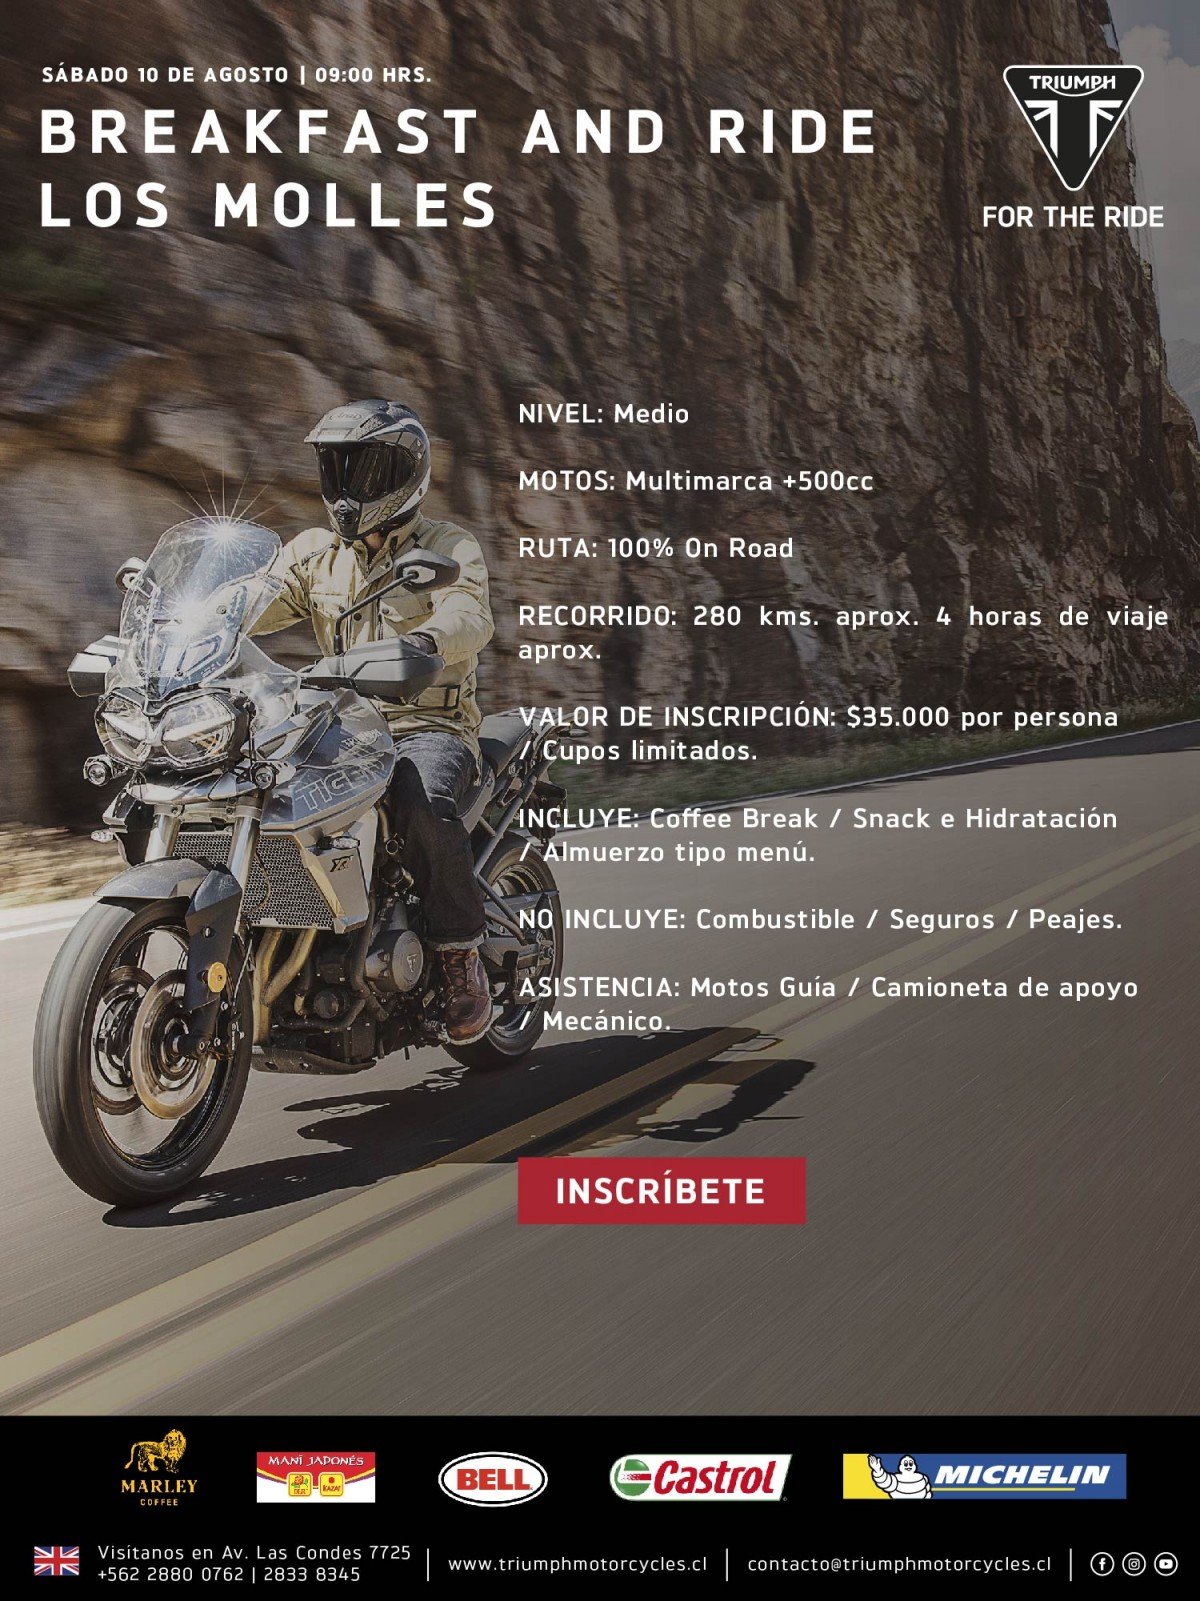 Breakfast and Ride Los Molles